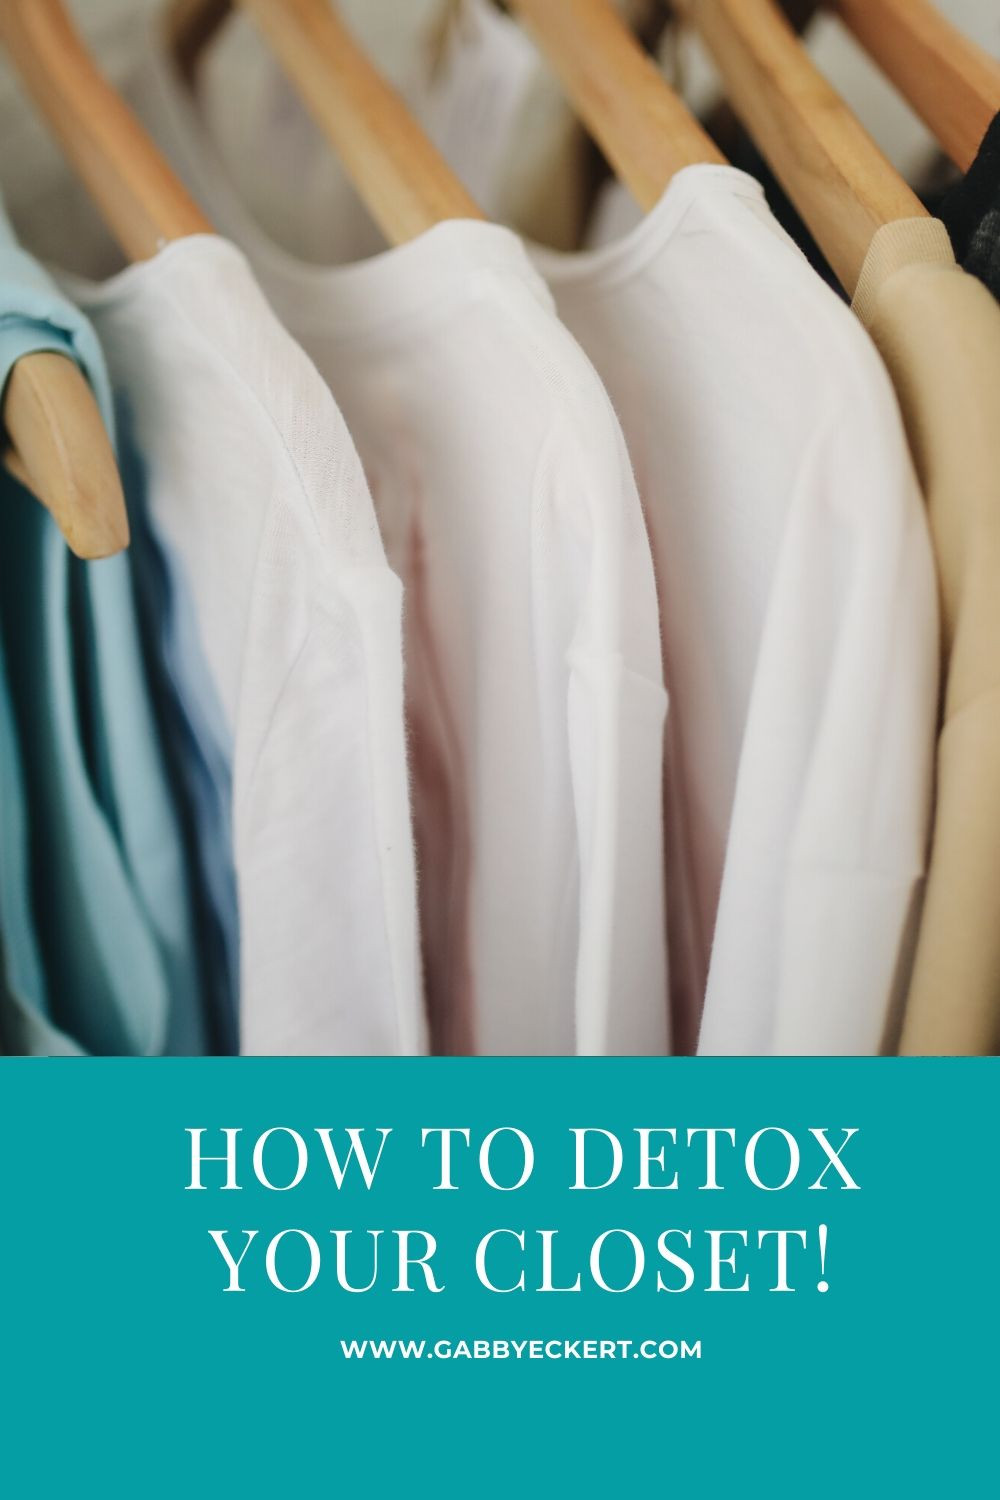 how to detox your closet